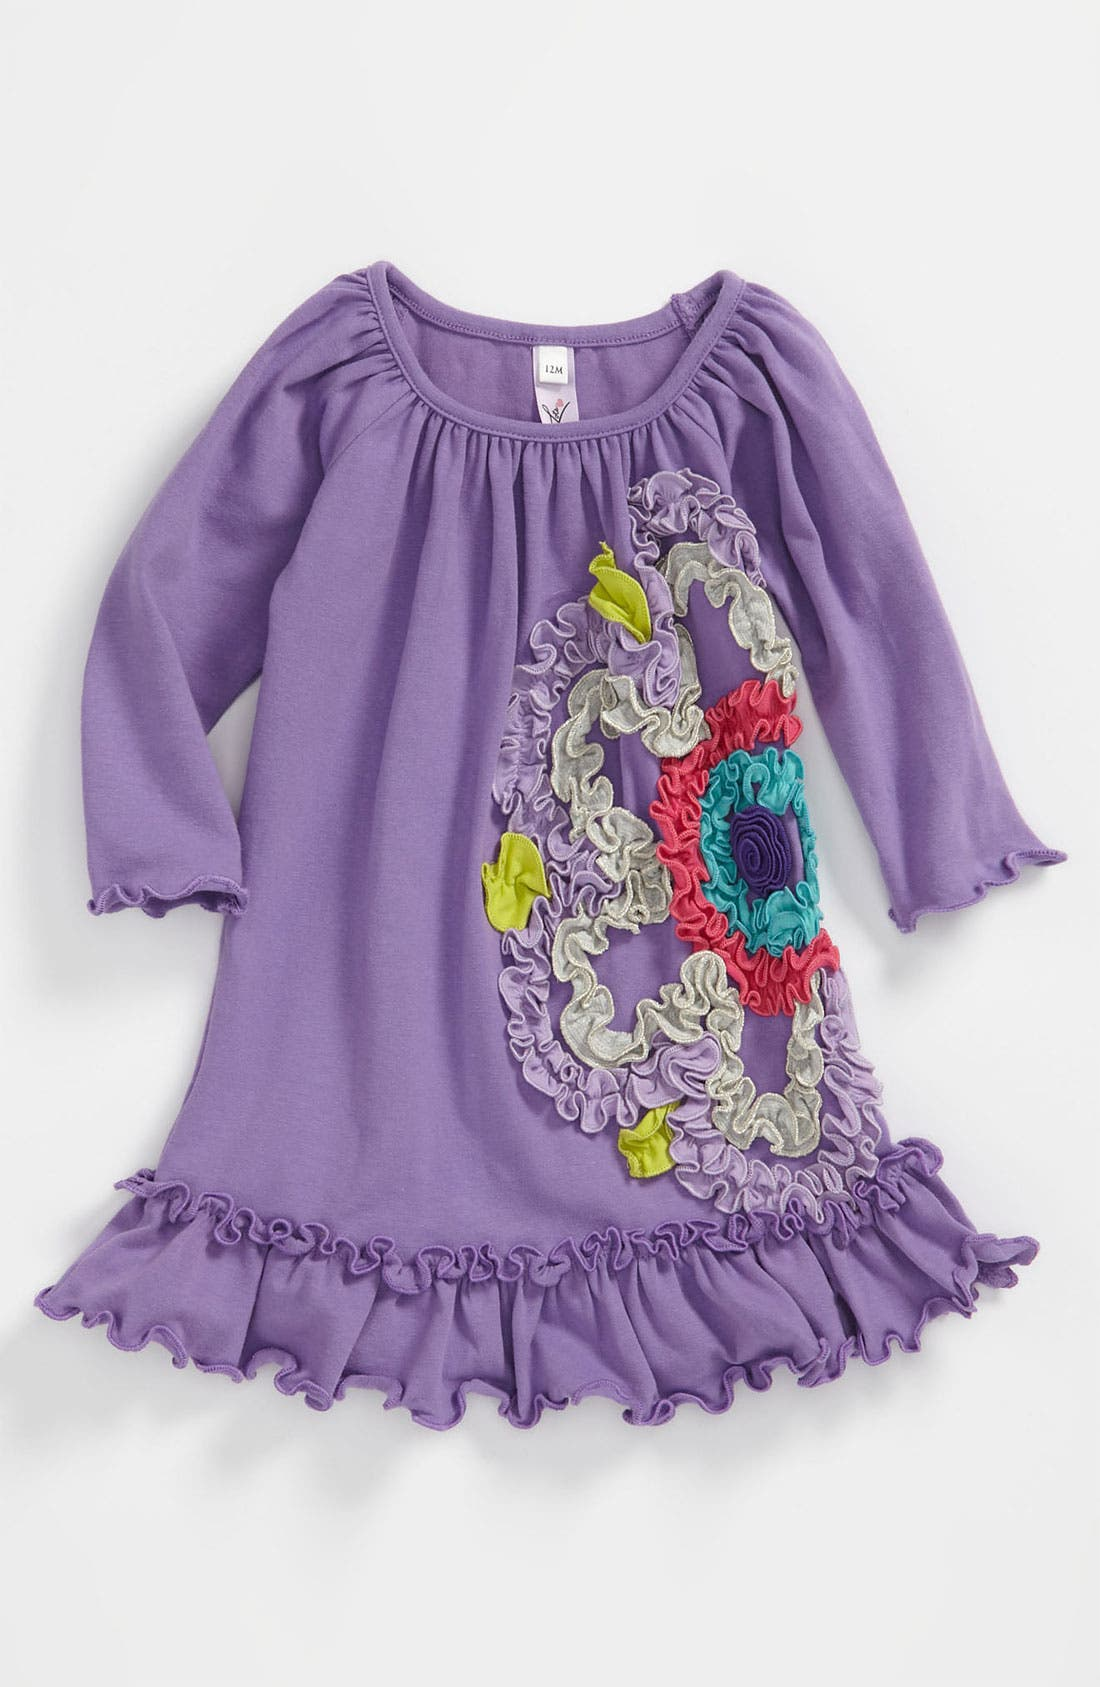 Alternate Image 1 Selected - Love U Lots 'Ruffle Flower' Dress (Toddler)